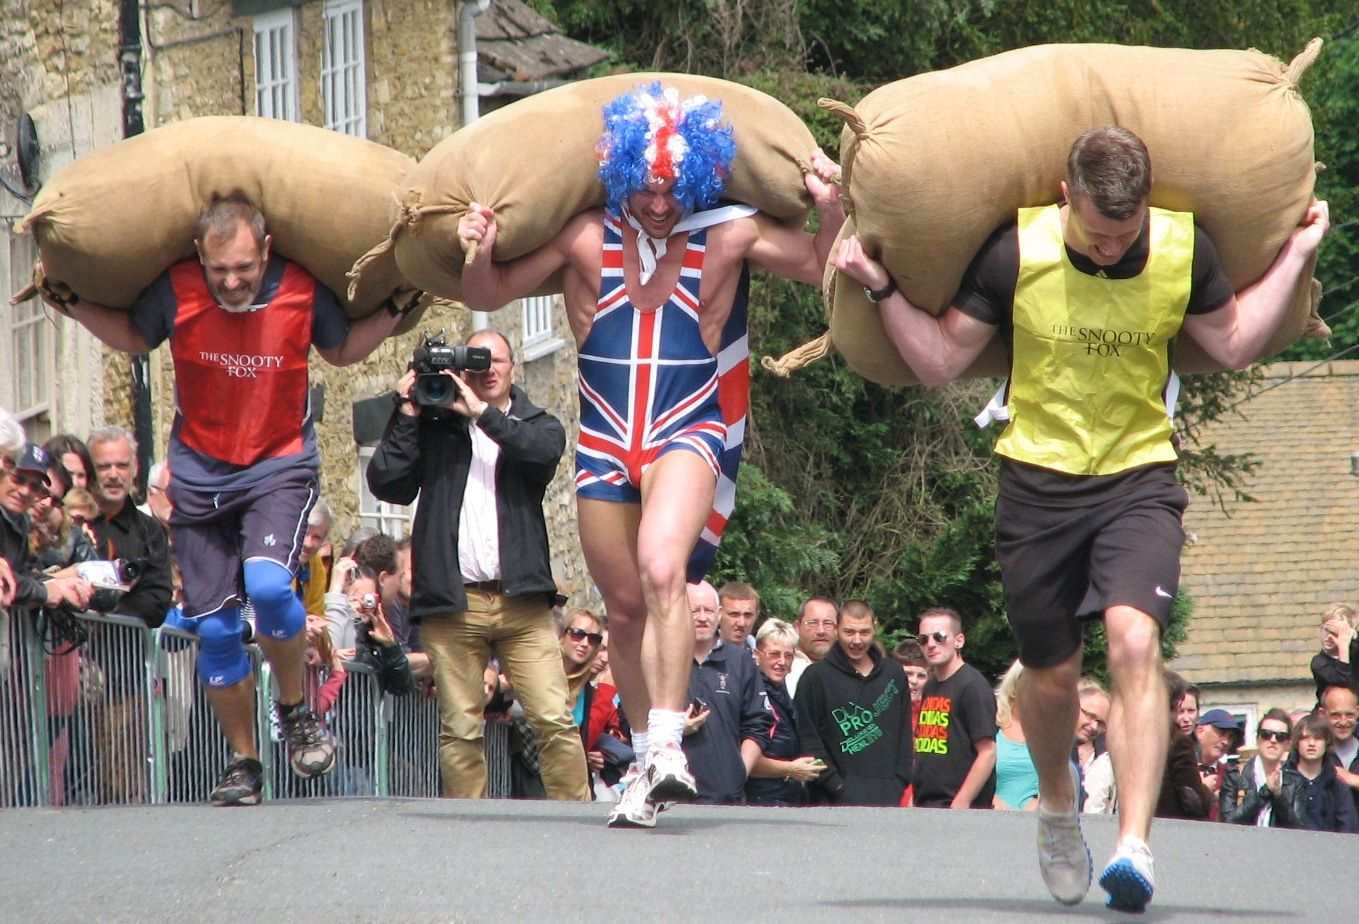 The Tetbury Woolsack Races draw hundreds of spectators to the Cotswold town each year. Pictures by Christine Gibb